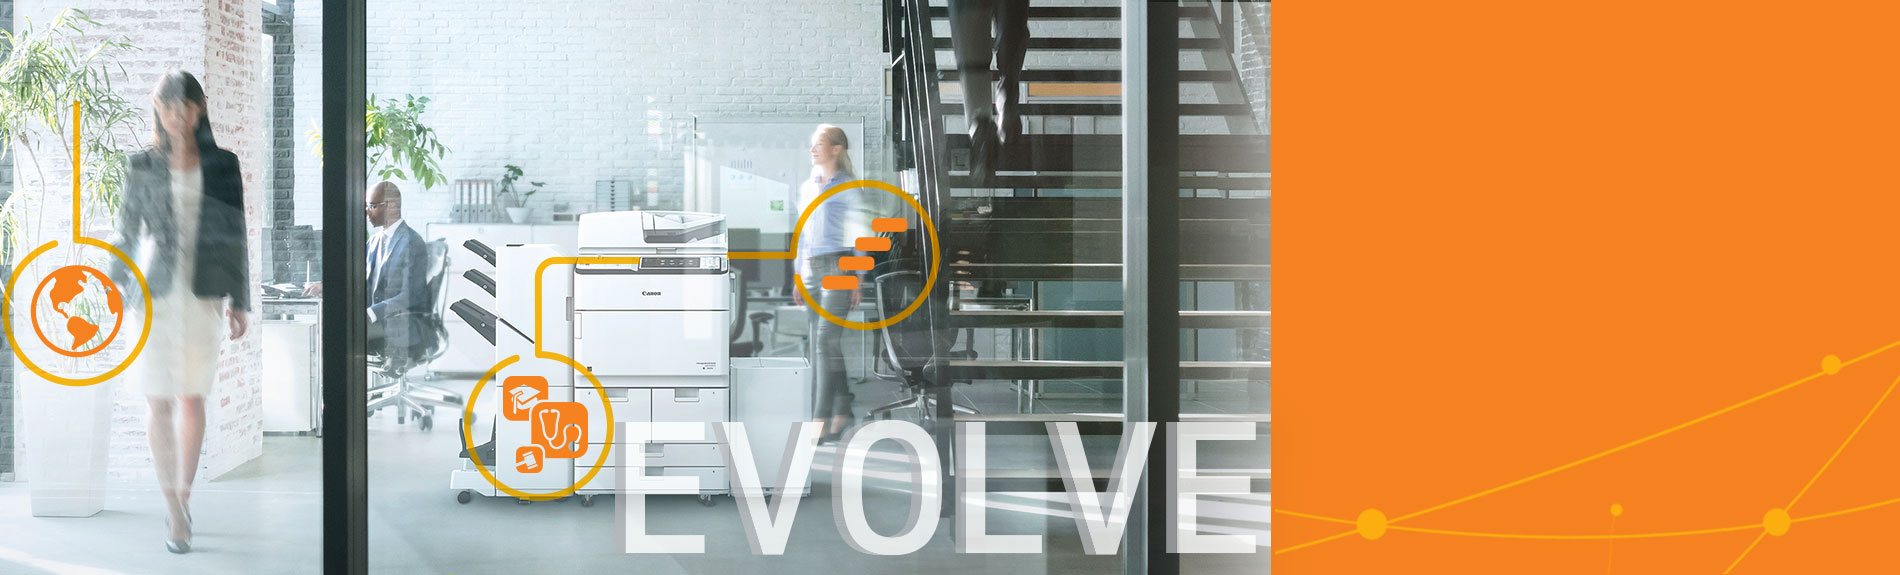 People in office with Evolve text overlay